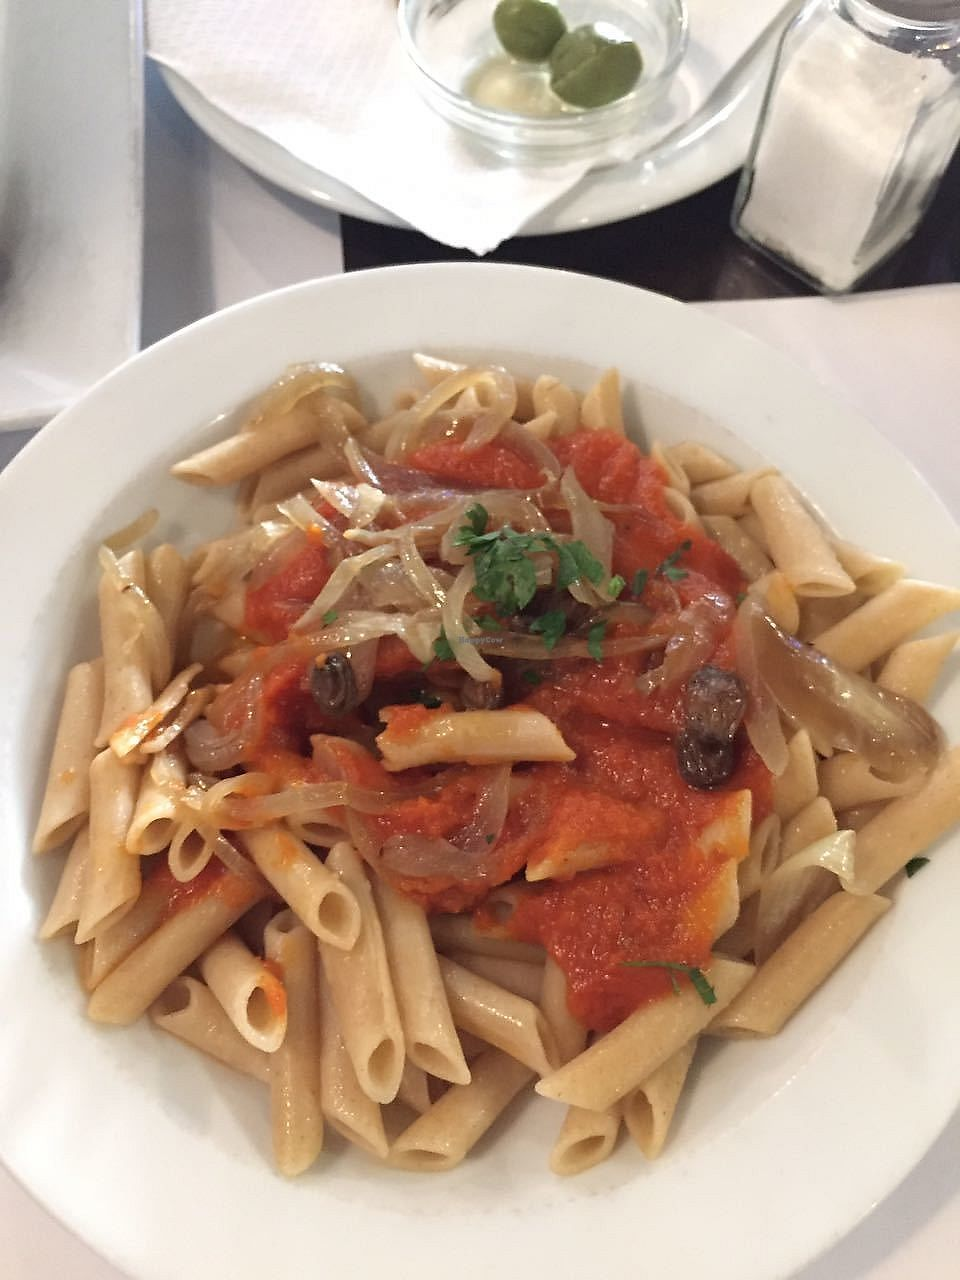 """Photo of Vegetariano El Calafate  by <a href=""""/members/profile/FlokiTheCat"""">FlokiTheCat</a> <br/>Pasta with tomato sauce and caramelized onions <br/> October 6, 2017  - <a href='/contact/abuse/image/25756/312333'>Report</a>"""